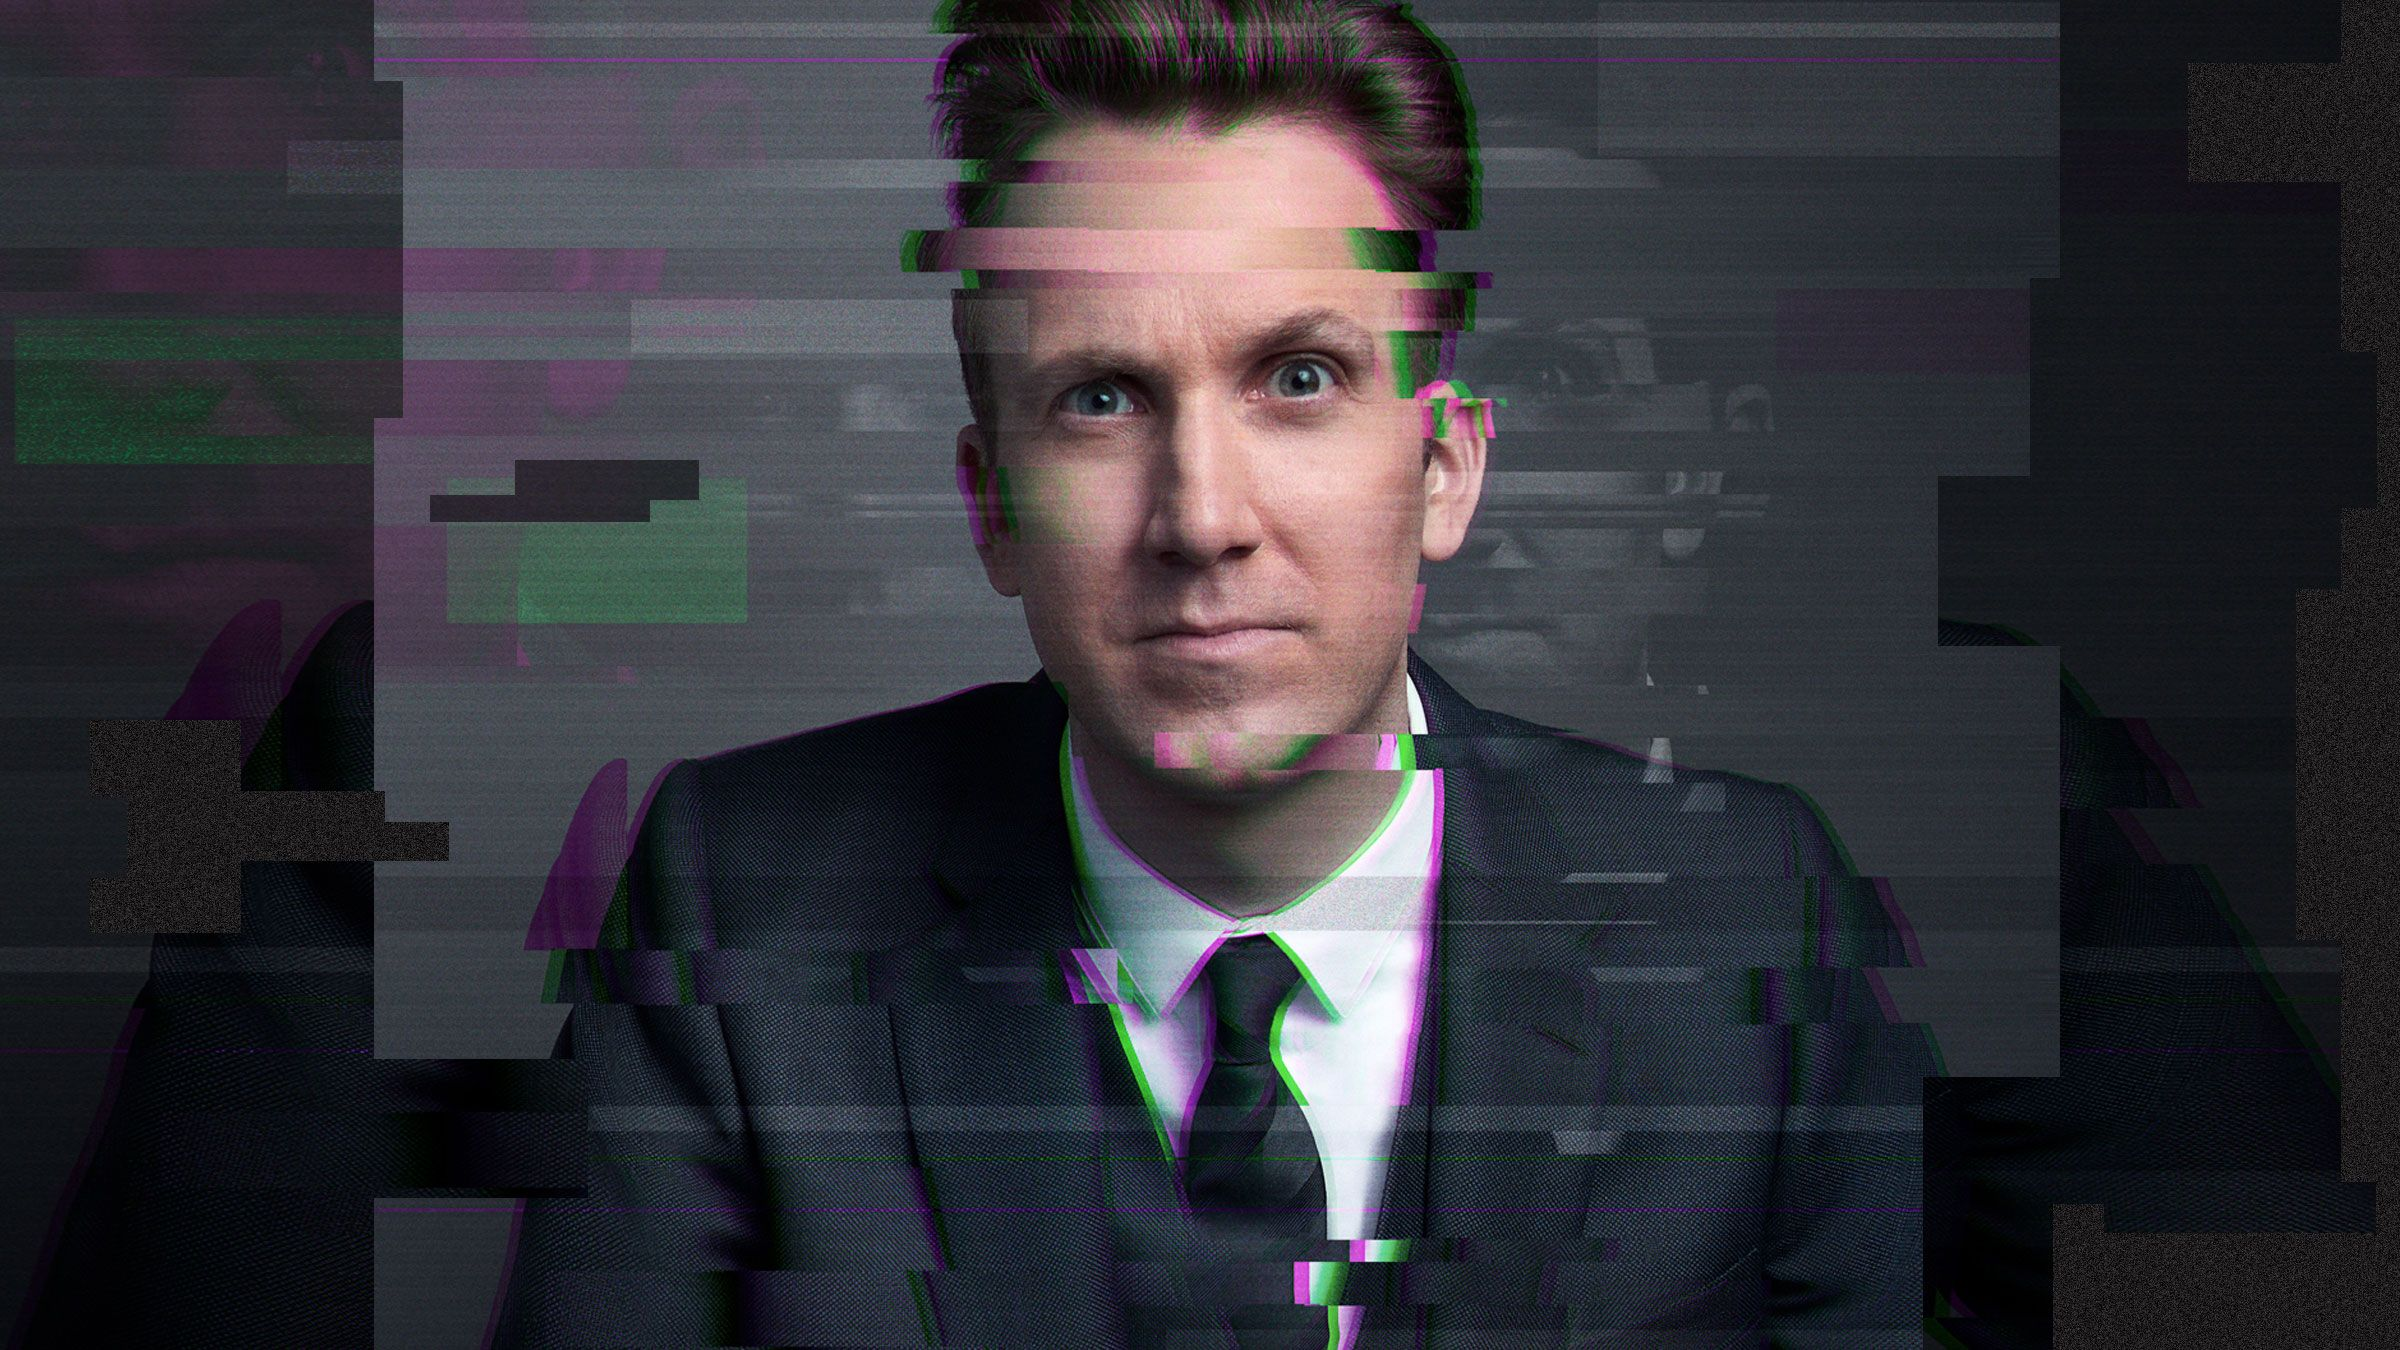 The Opposition with Jordan Klepper on FREECABLE TV